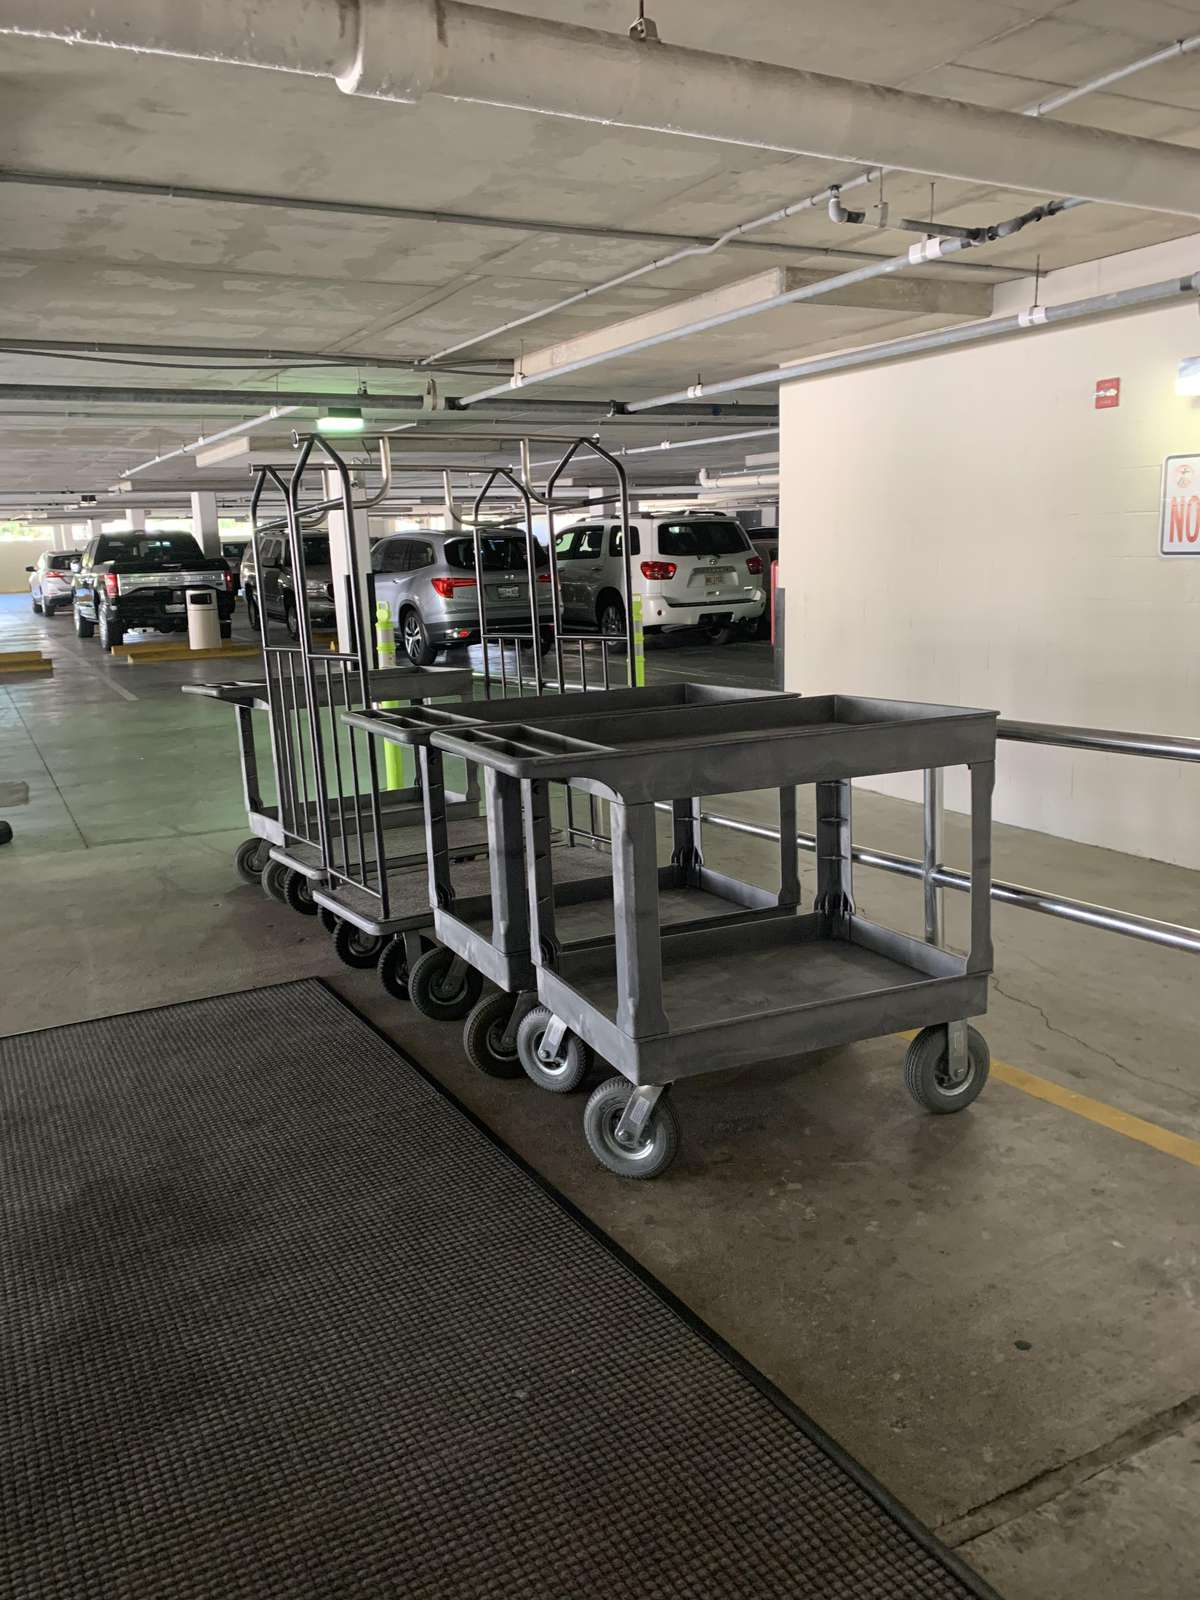 Covered parking with trolleys for easy luggage transfer